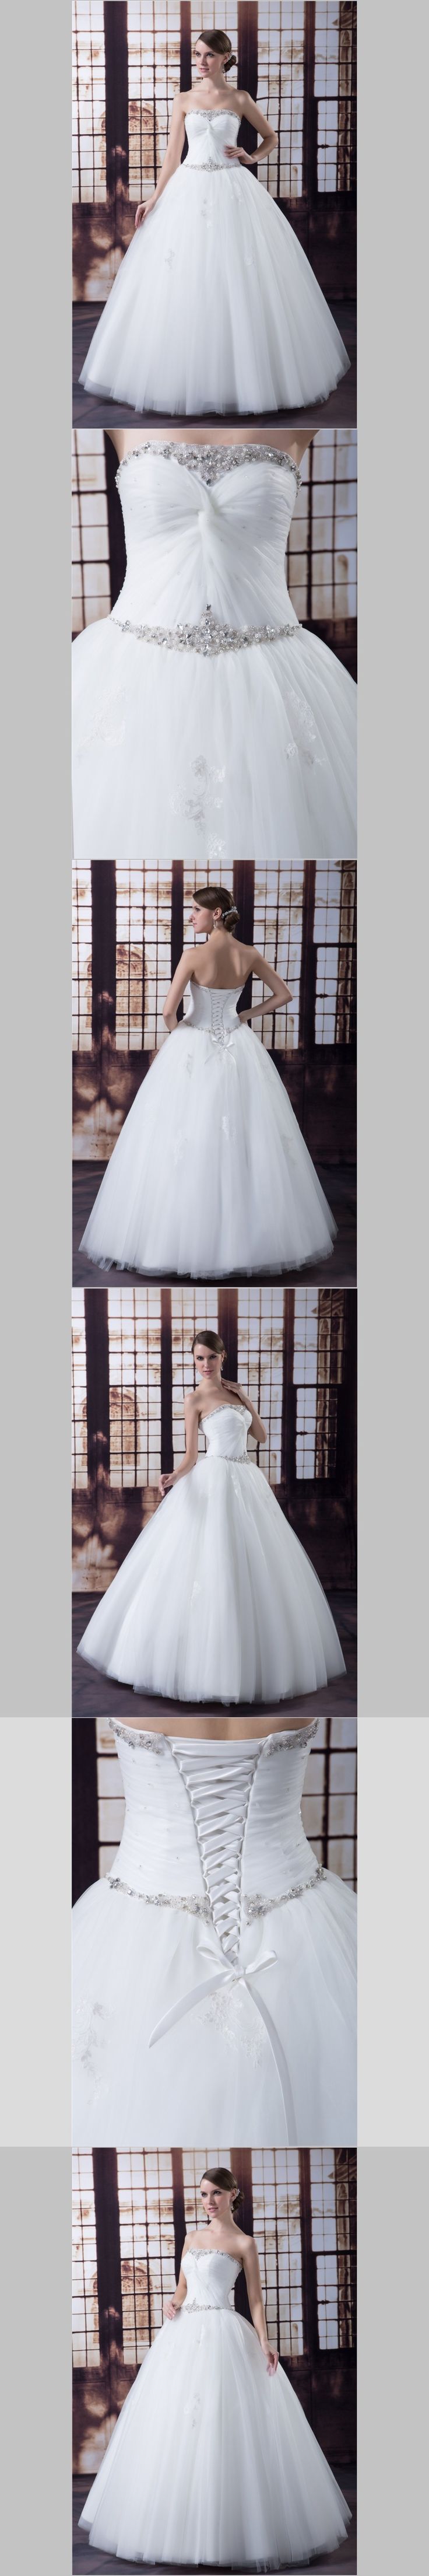 iLoveWedding Ball Gown Wedding Dresses Strapless Organza Tulle Pearls Beading Sequined Lace Up Bridal Gowns YW0023